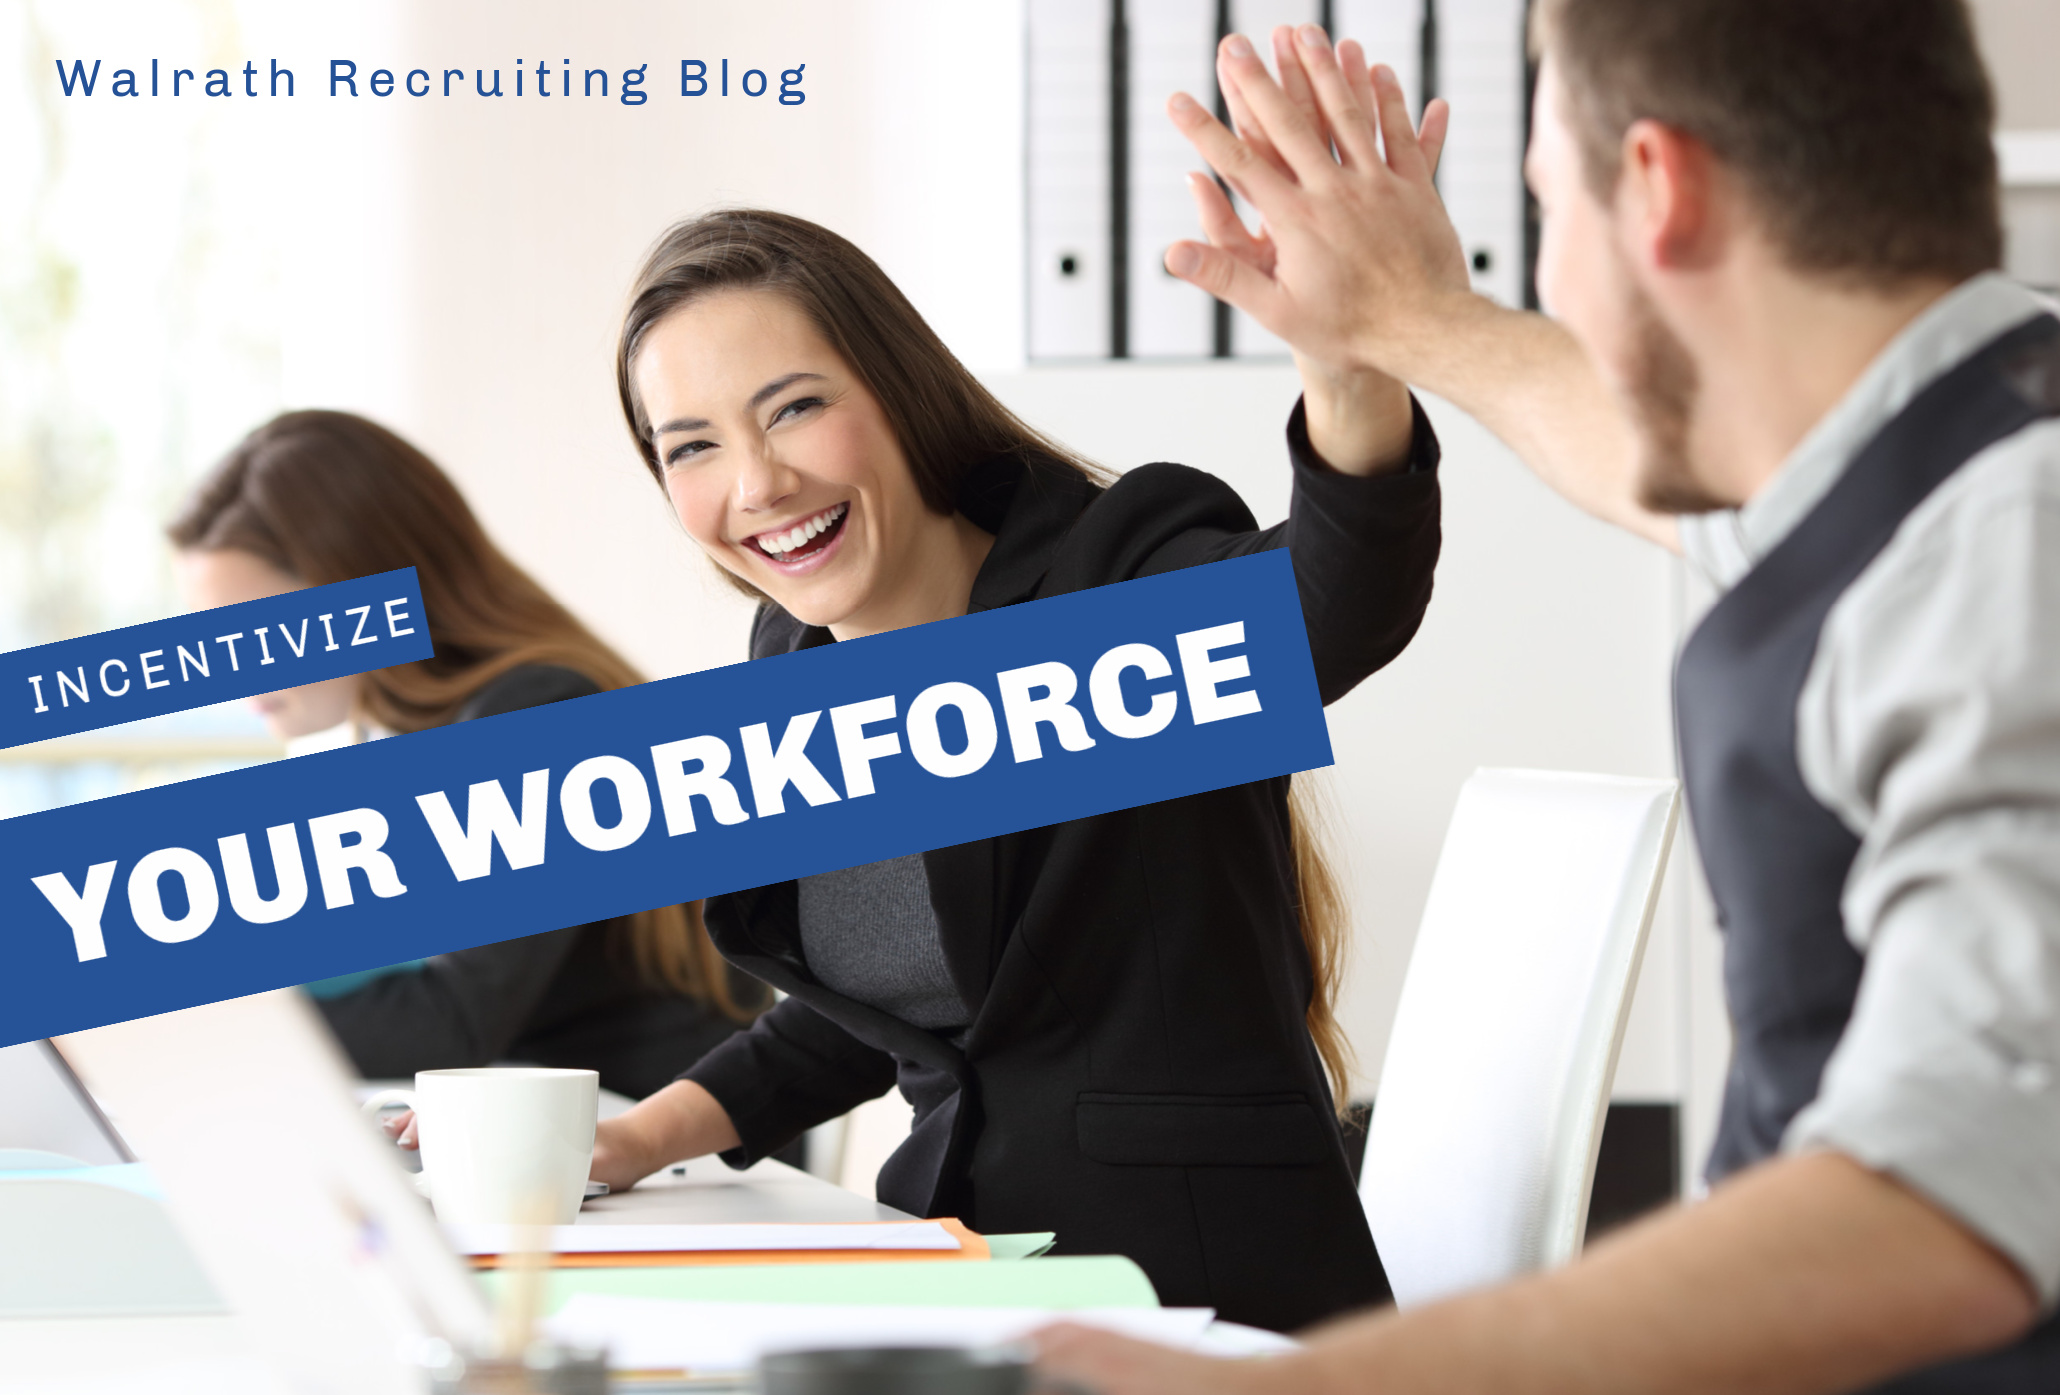 Check out these tips for incentivizing employees and watch your productivity sky rocket!